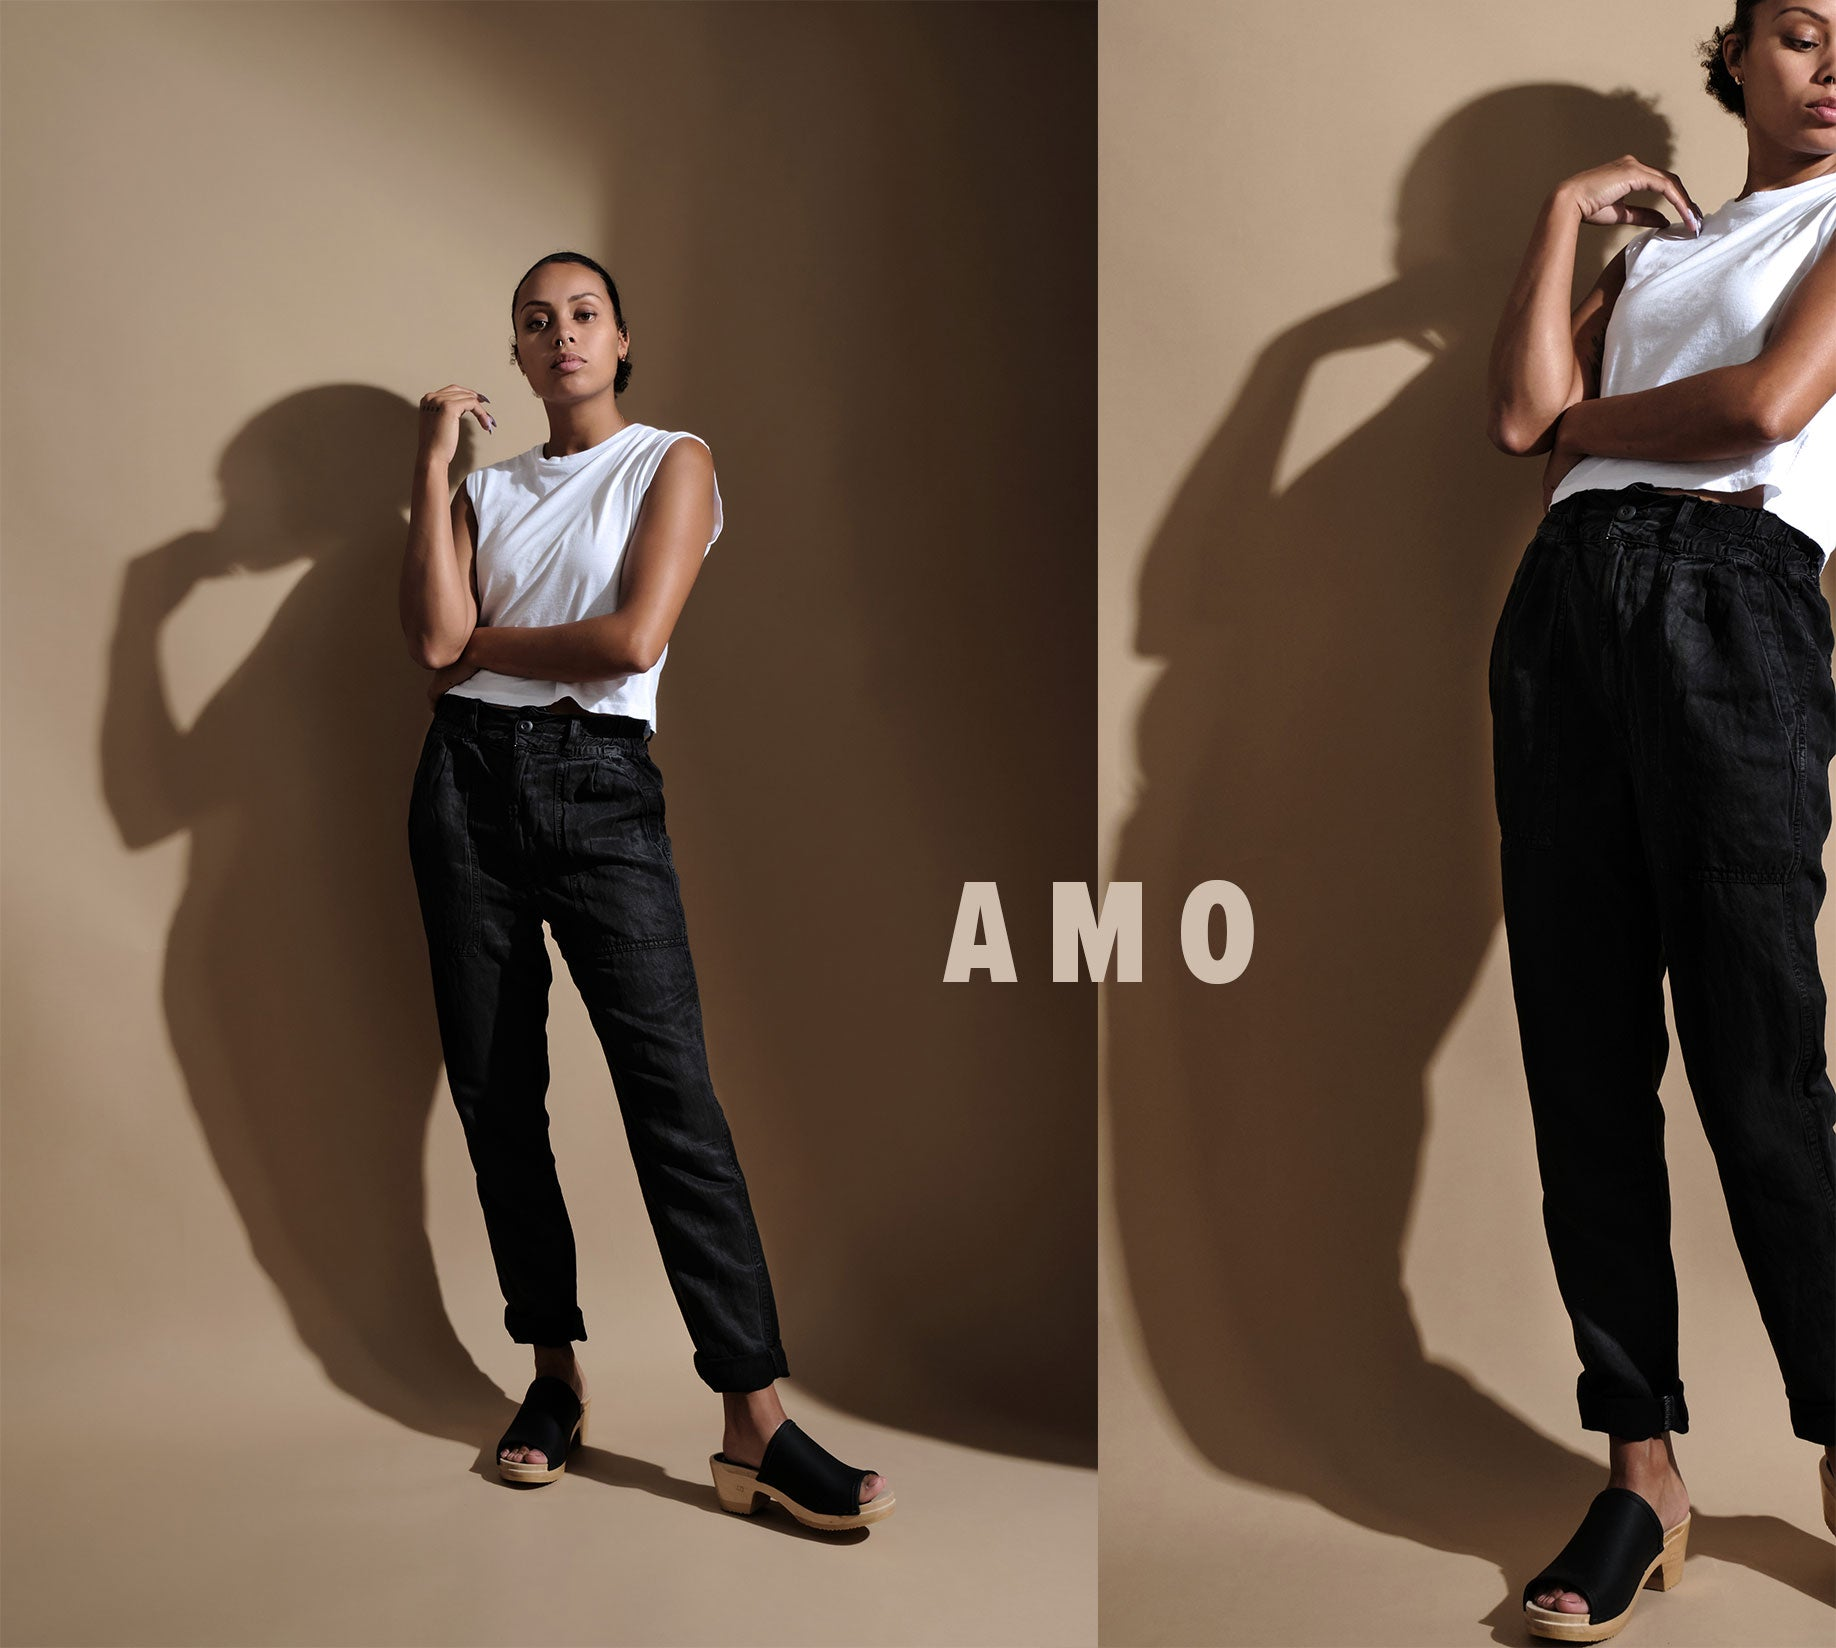 Amo denim brand feature